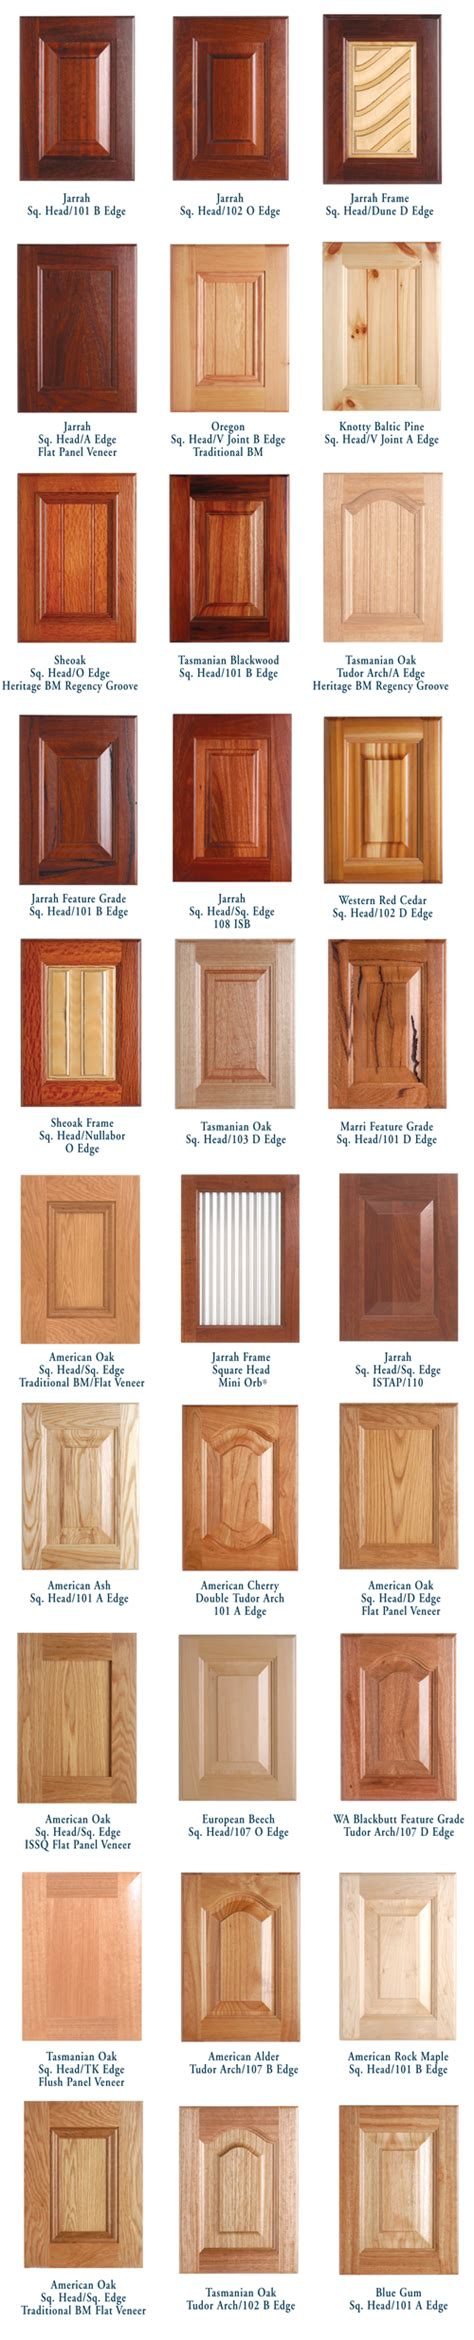 solid timber cabinet doors proform products